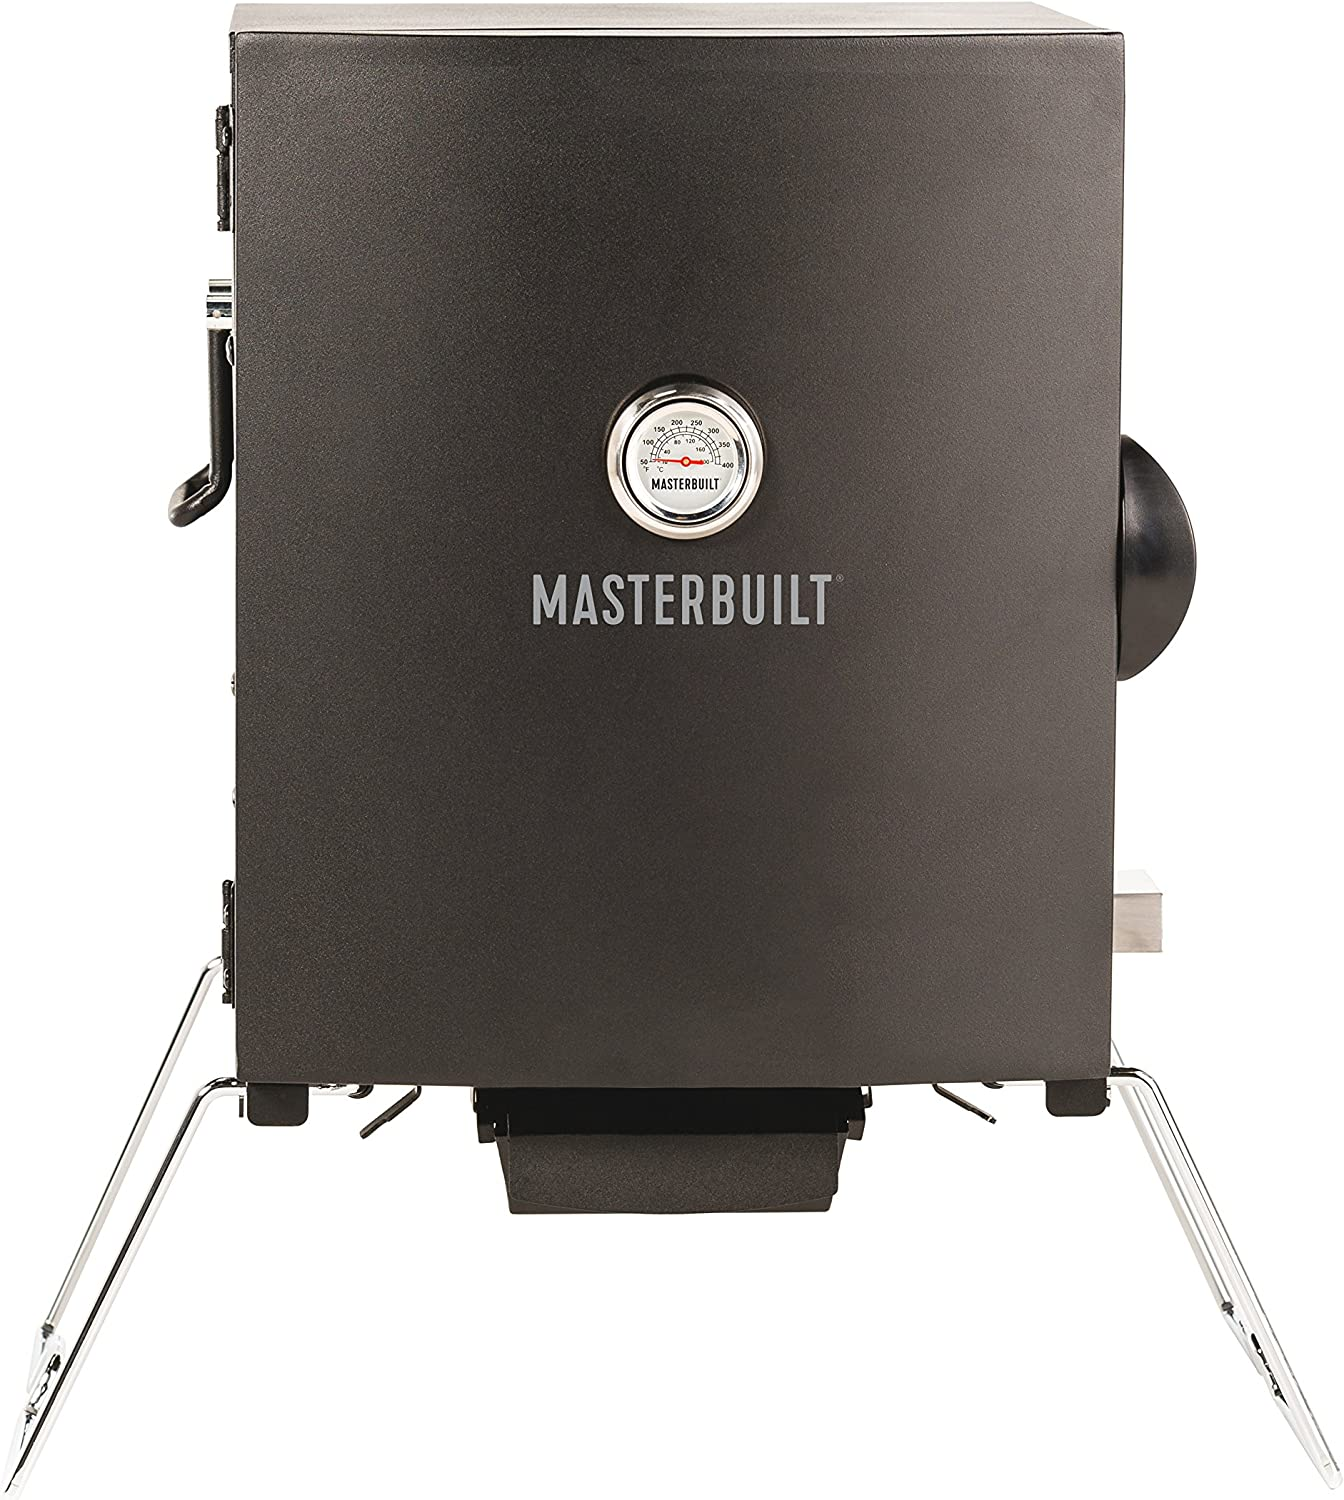 Best portable: Masterbuilt MB20073716 Patio Electric Smoker